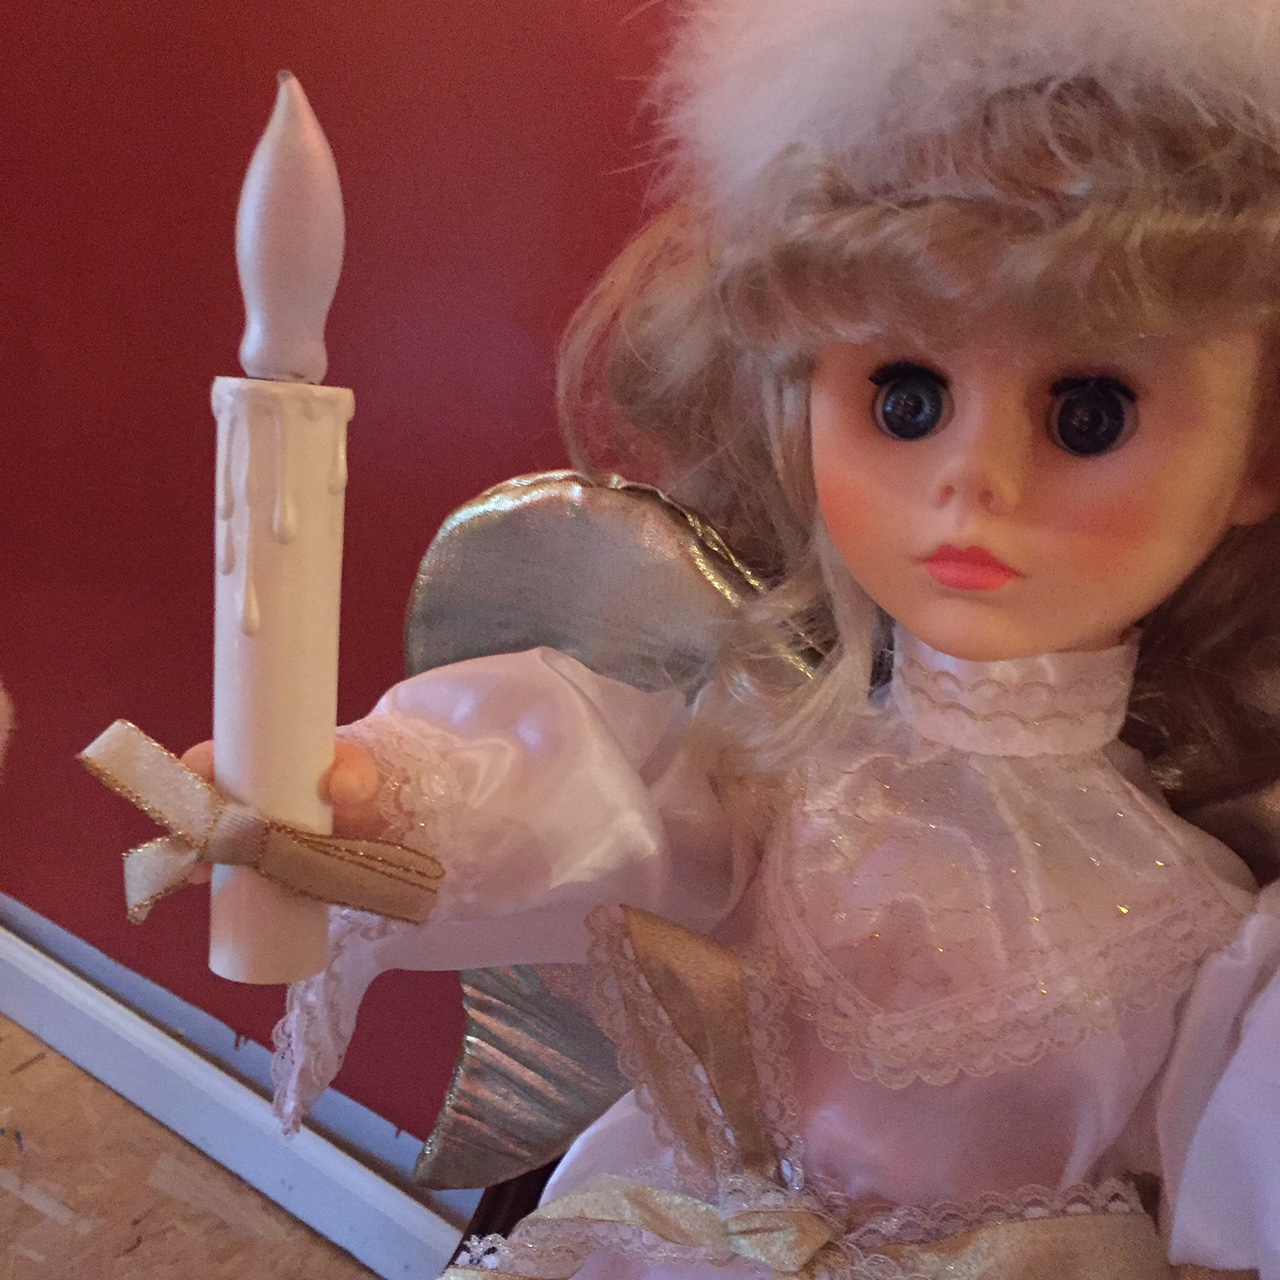 If you don't give the gift of good wine, this angel will haunt your dreams